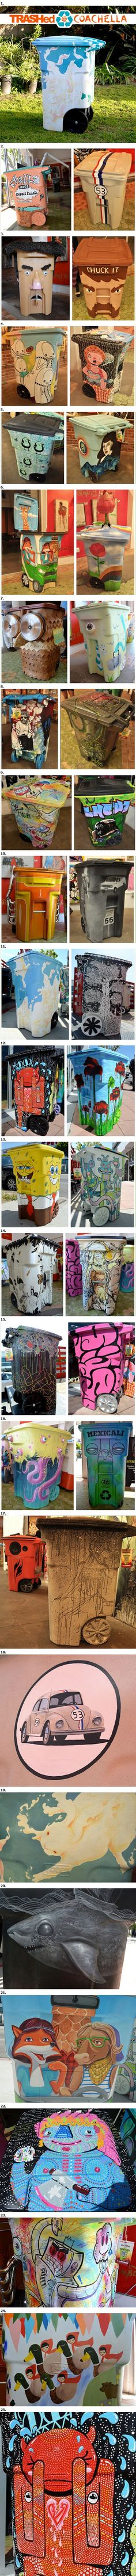 The TRASHed : Art Of Recycling - Art